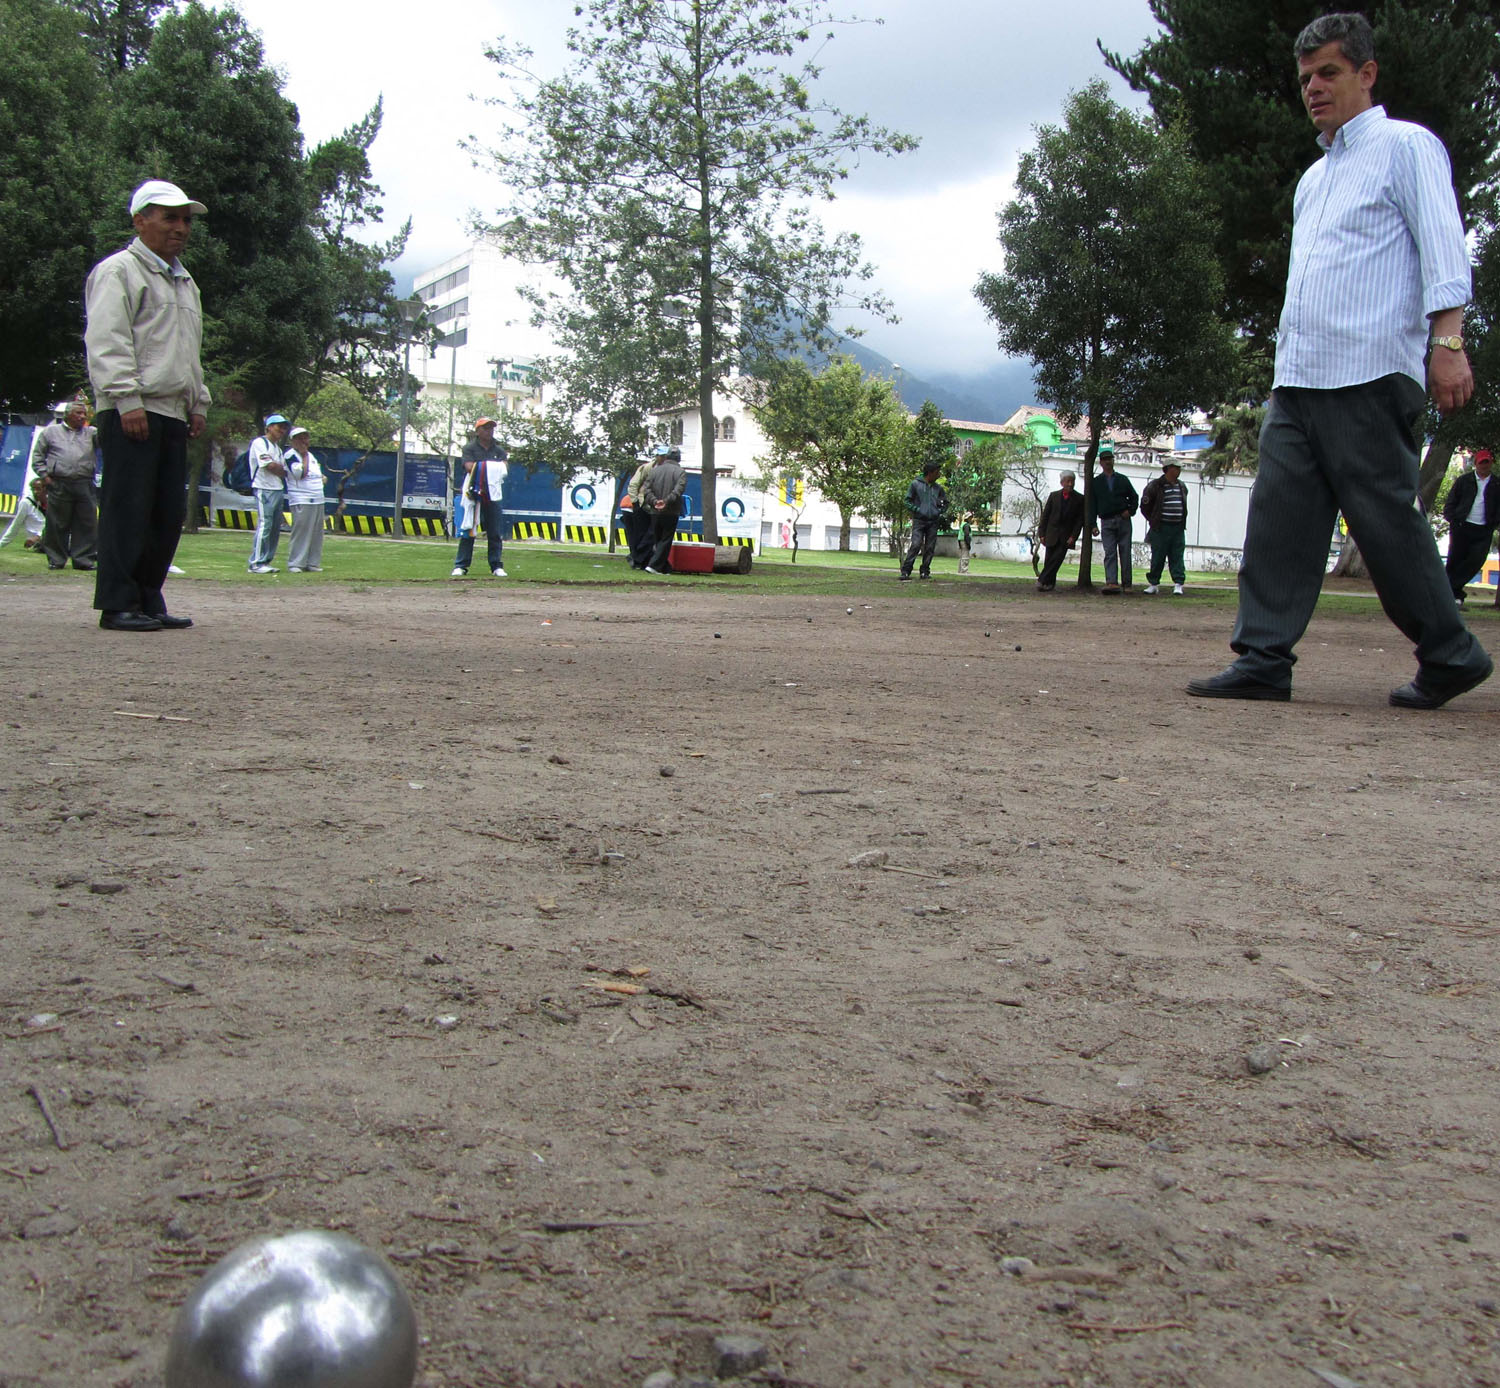 Ecuador-Quito-Park-Ball-Game